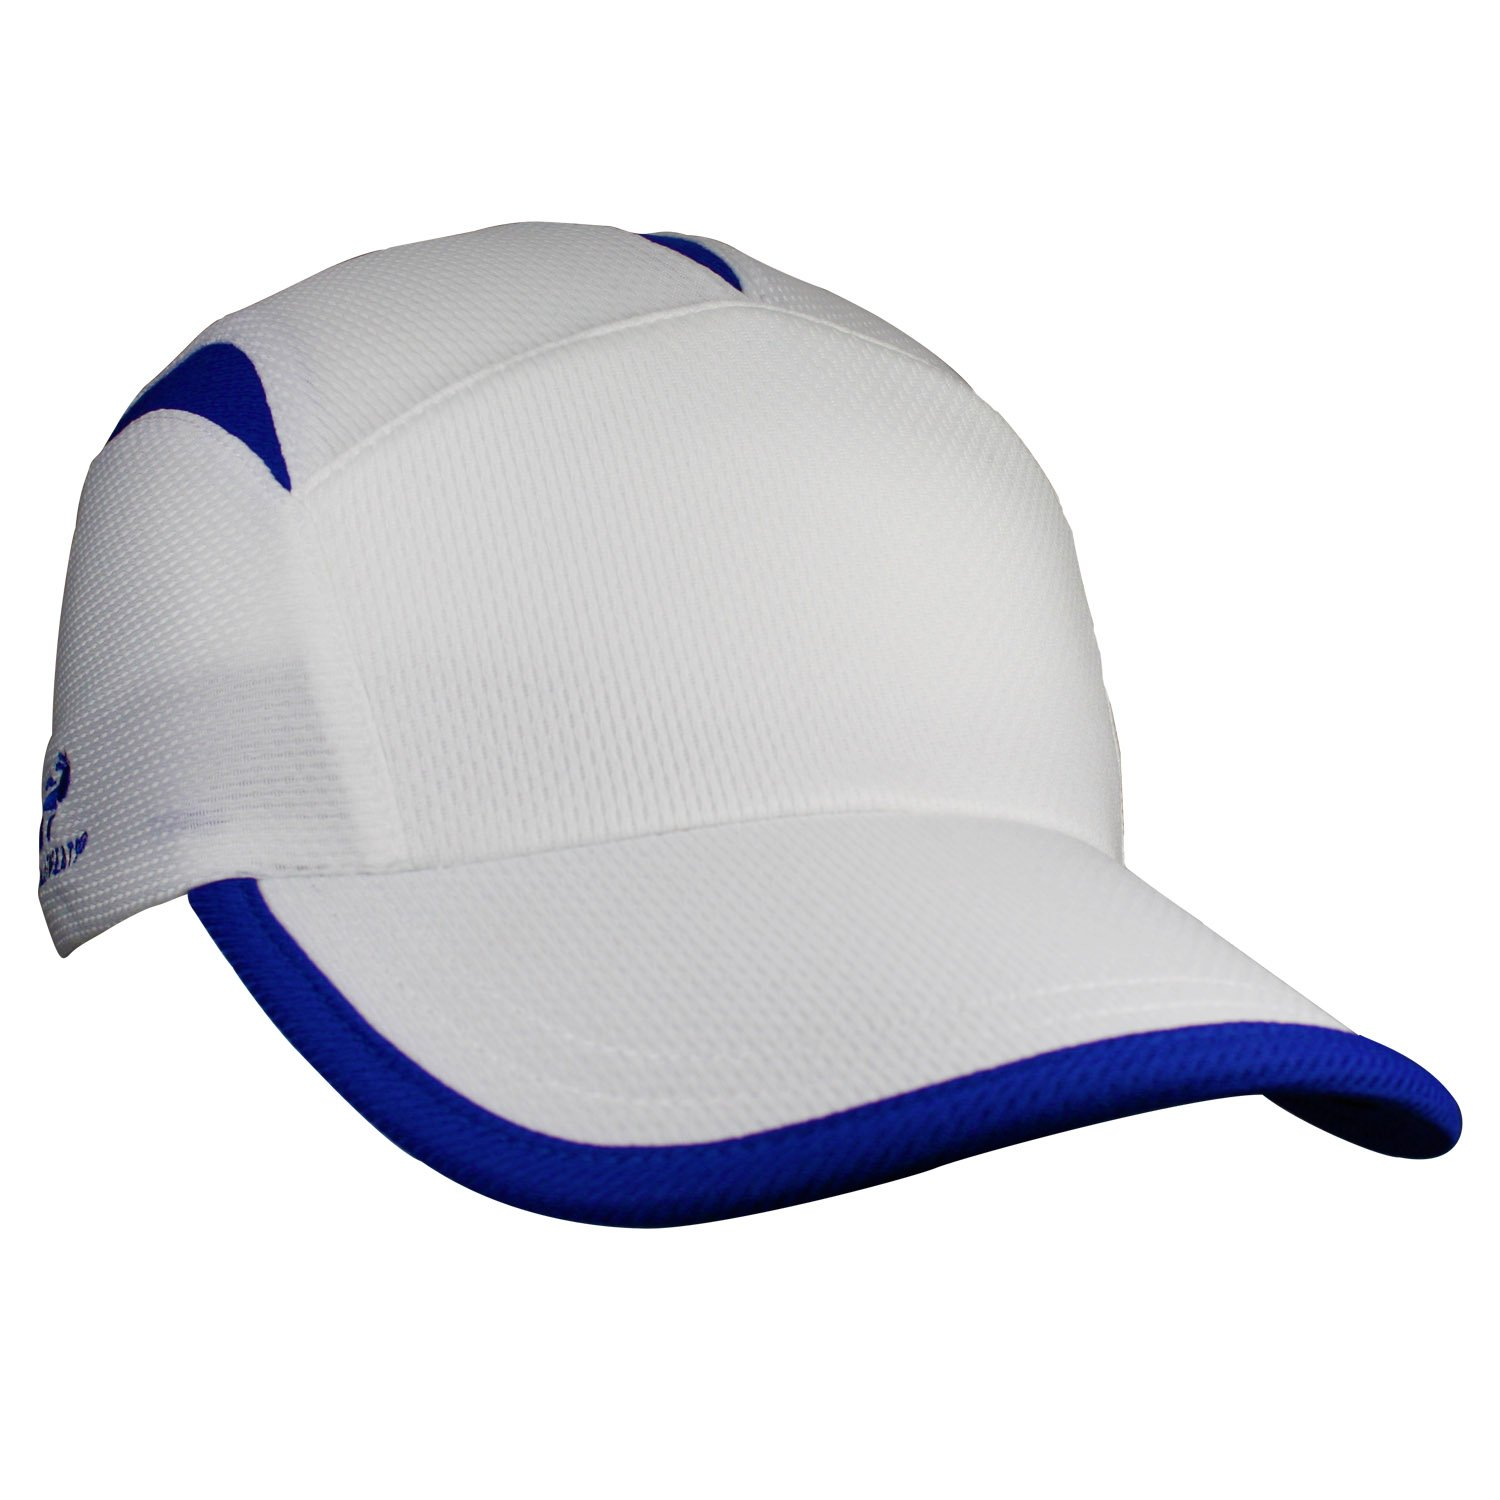 Headsweats Go Hat, White/Royal (One Size)